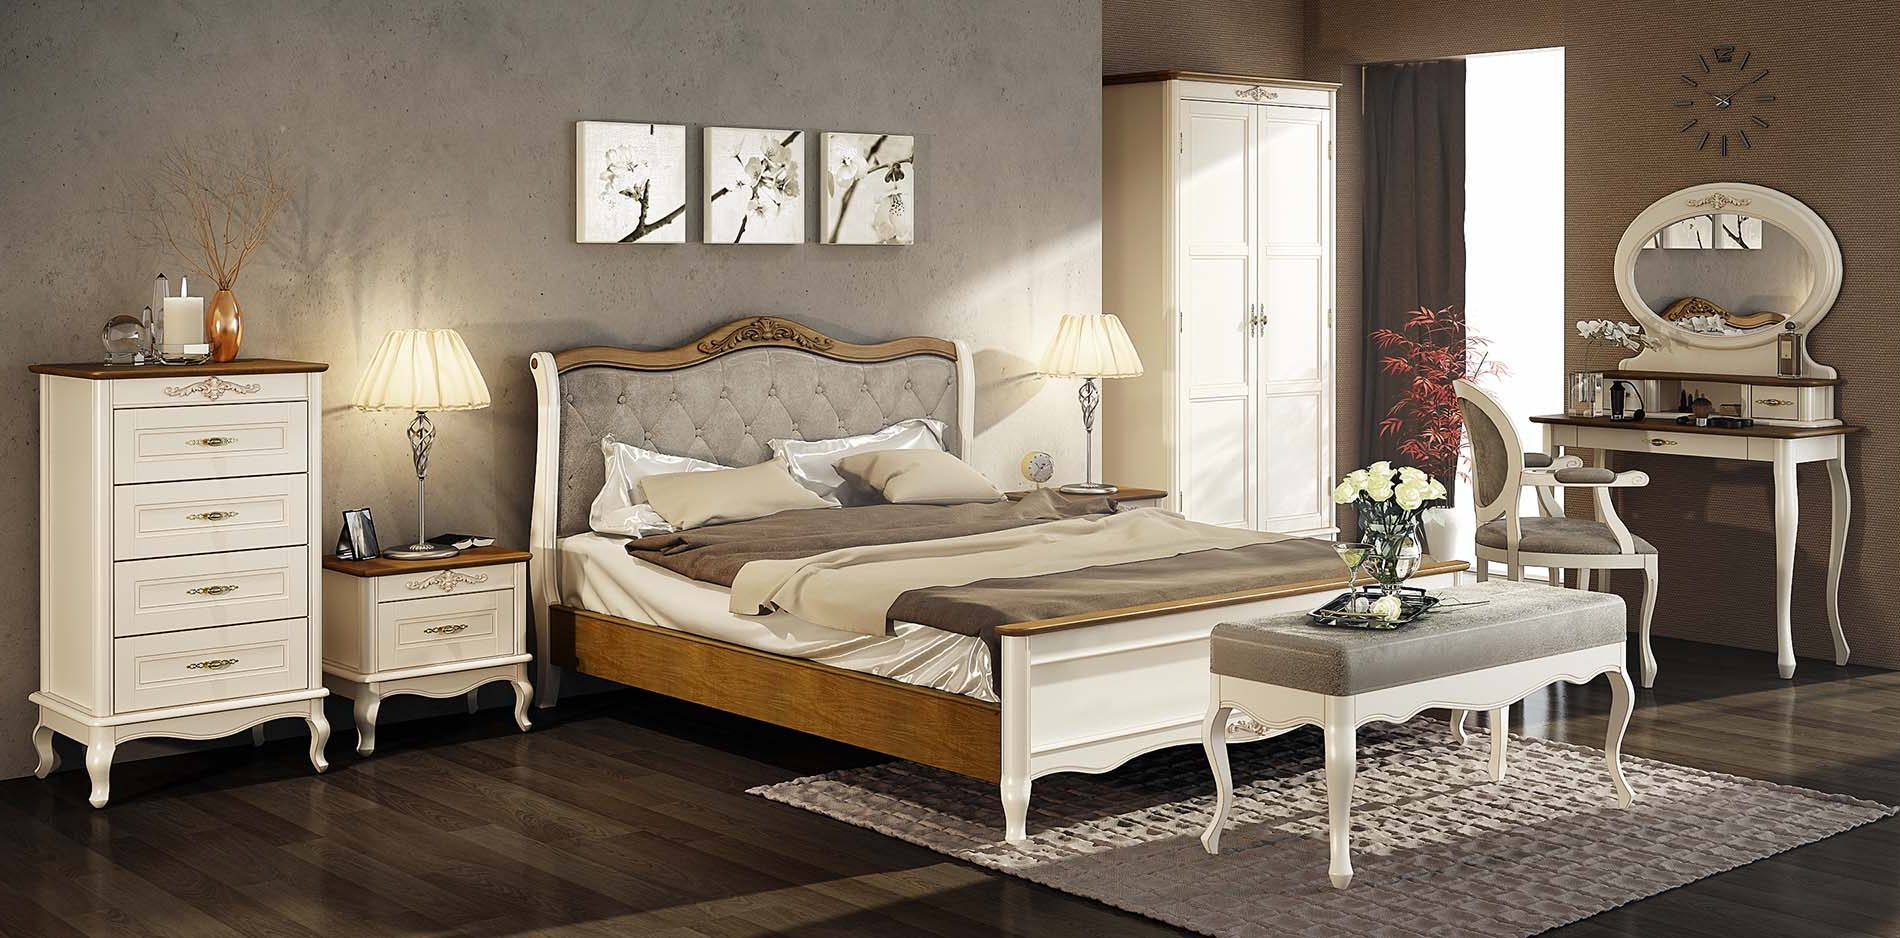 palermo_bedroom_4-e1500541534499